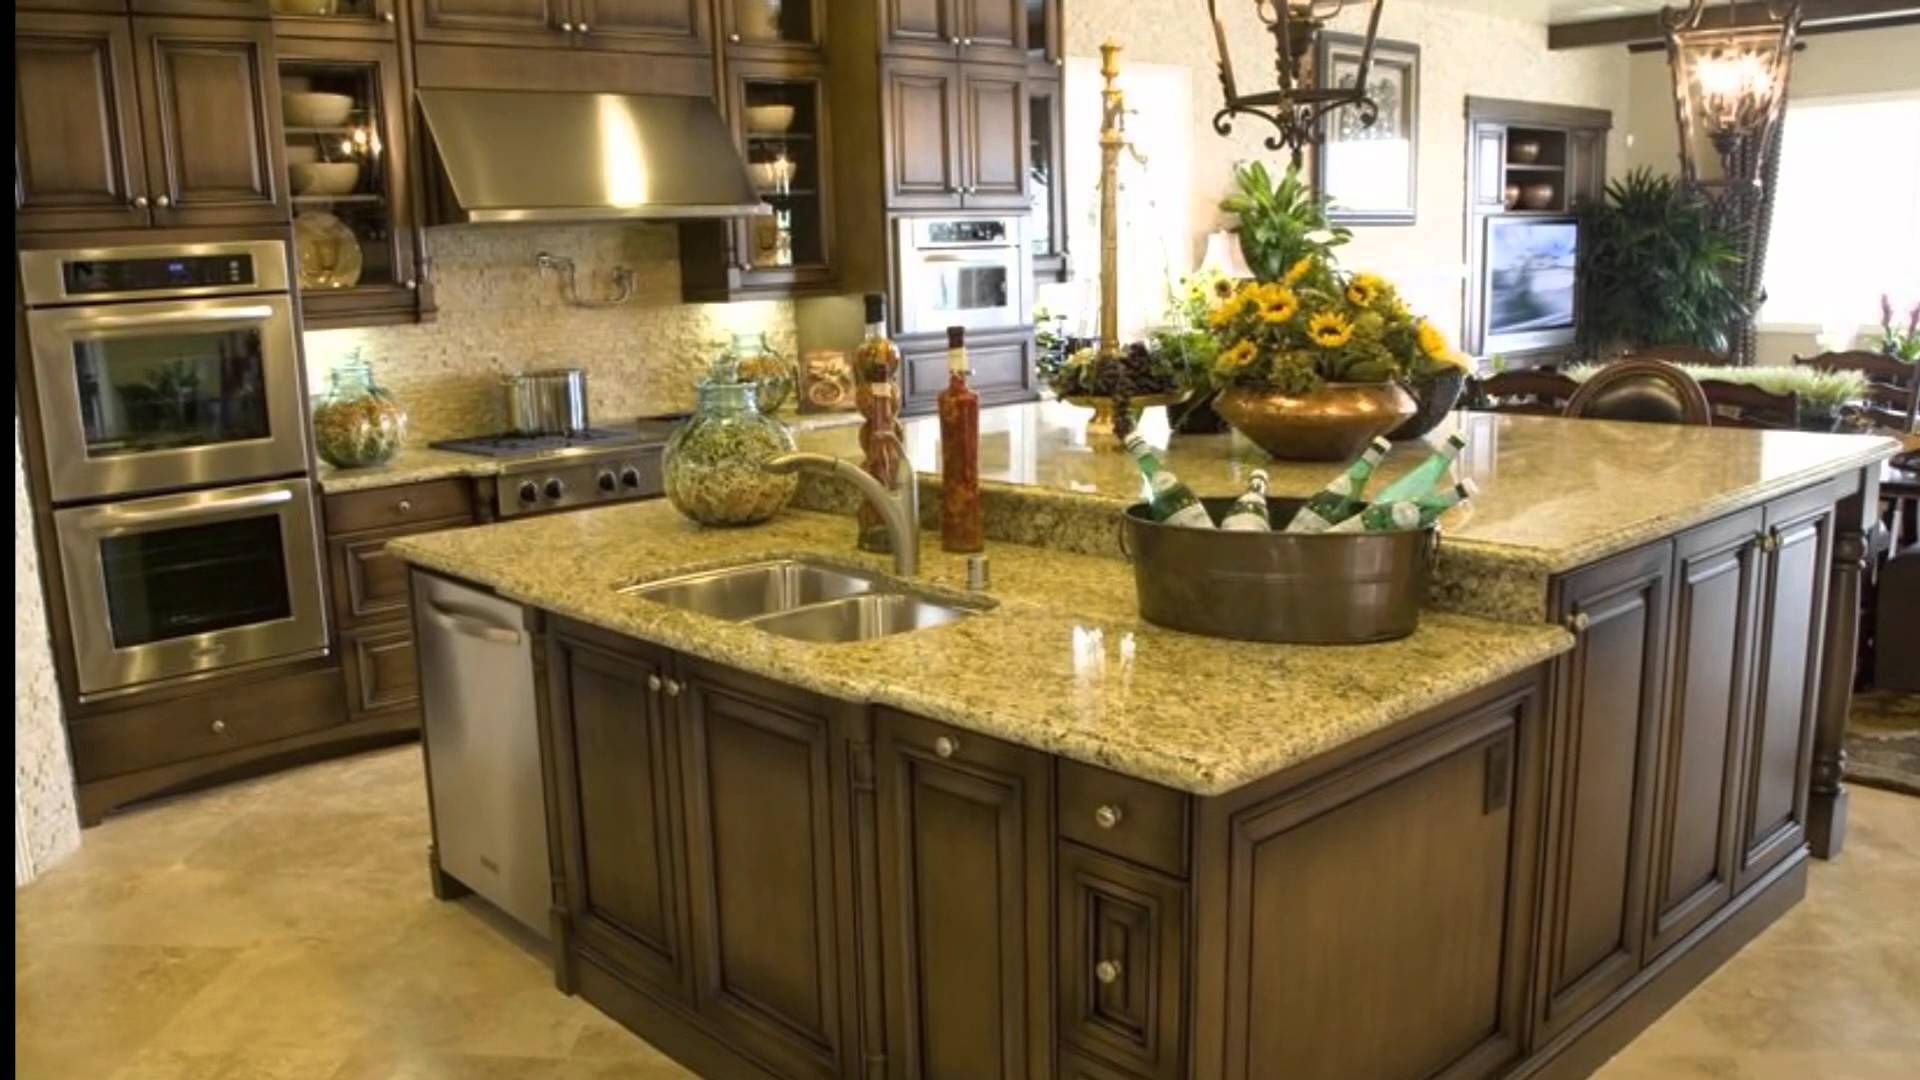 Click Here Some Great Kitchen Island Designs For Your Kitchenhttps Adorable Kitchen Islands 2018